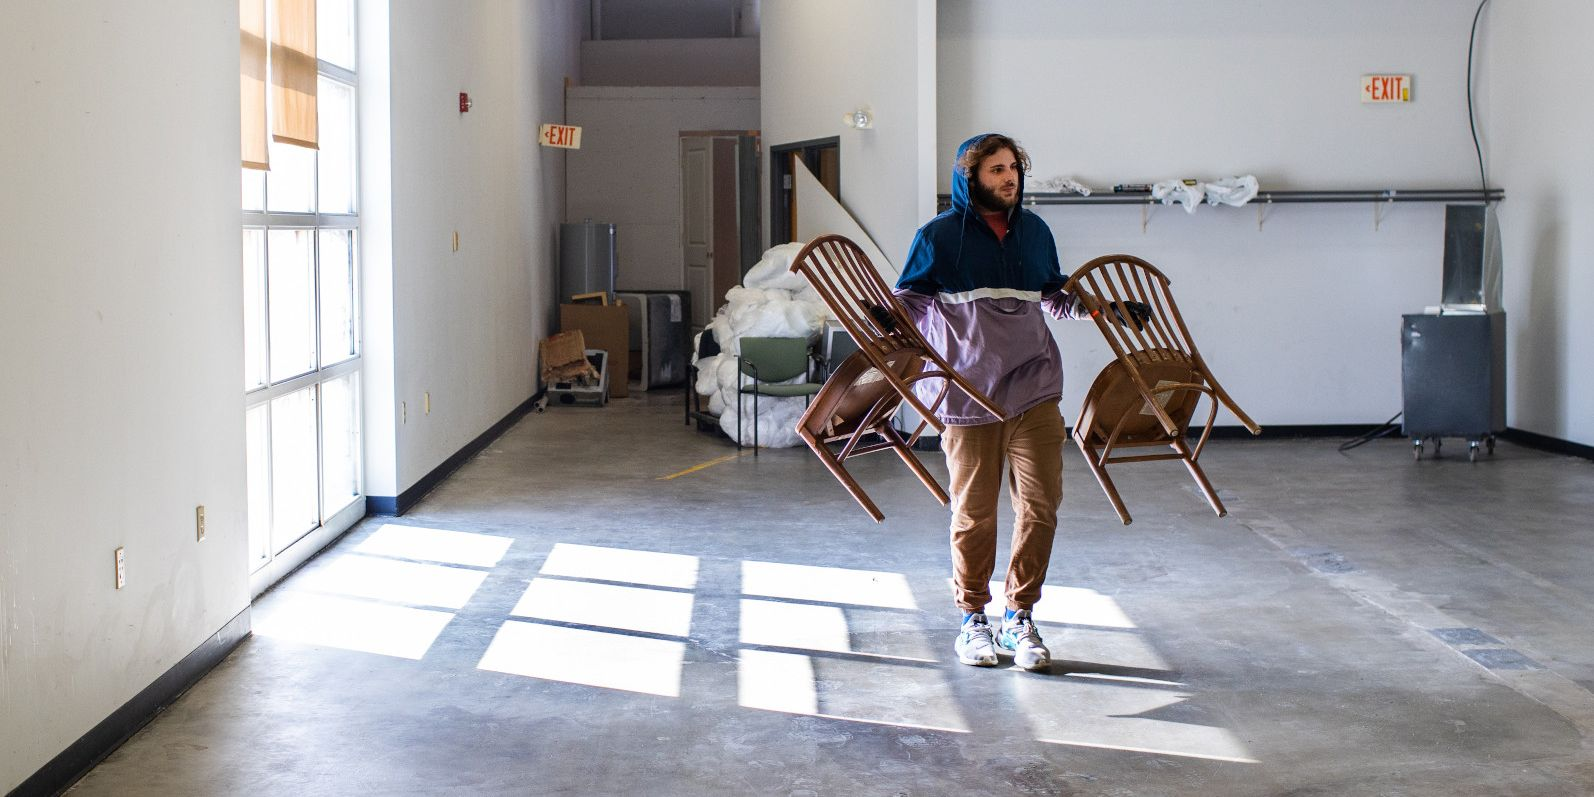 A mover carries two chairs across a mostly empty room